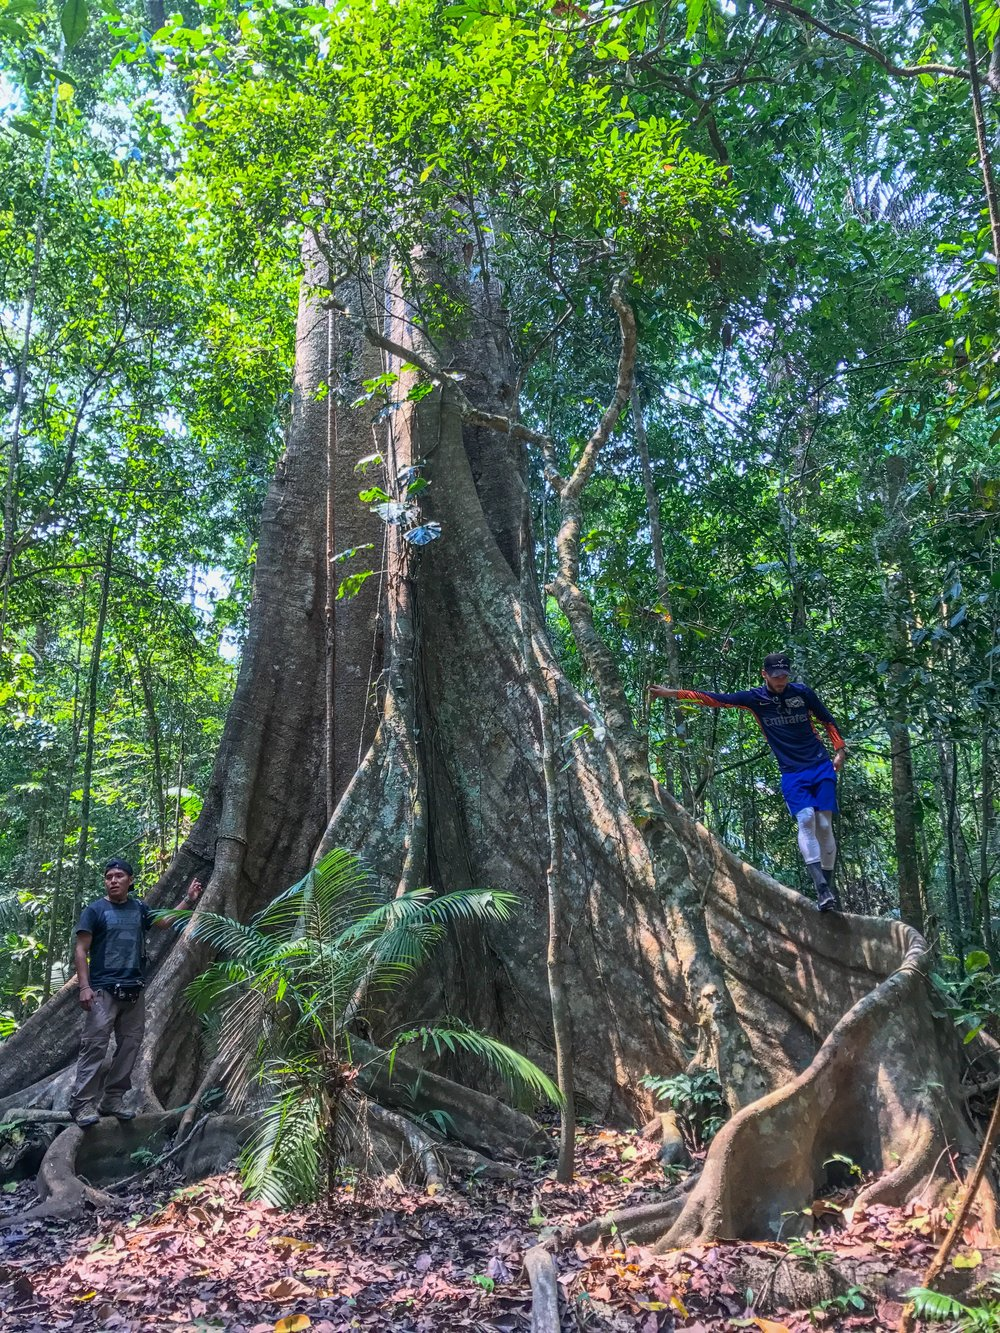 Huge trees all through Puerto Maldonado's jungle